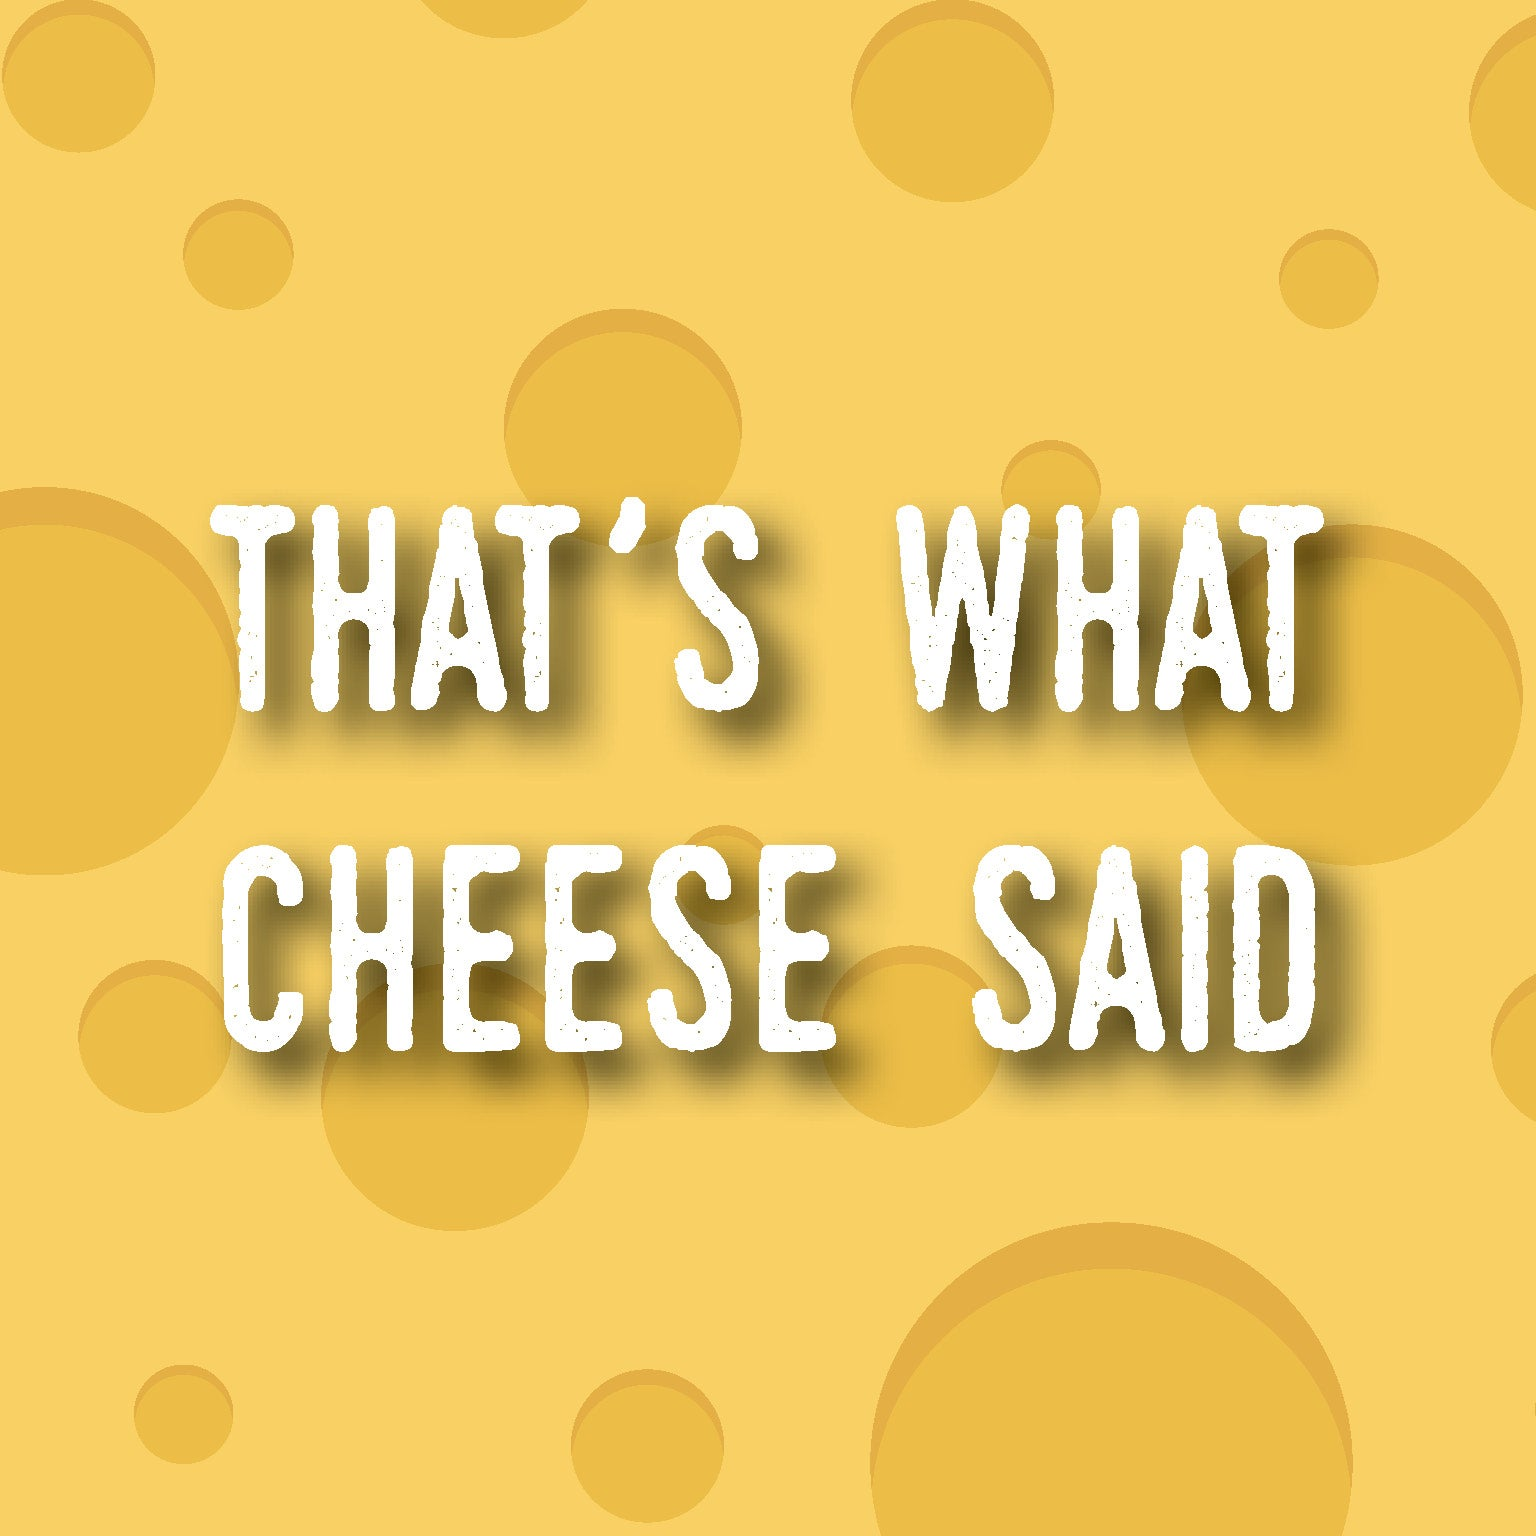 That's What Cheese Said!